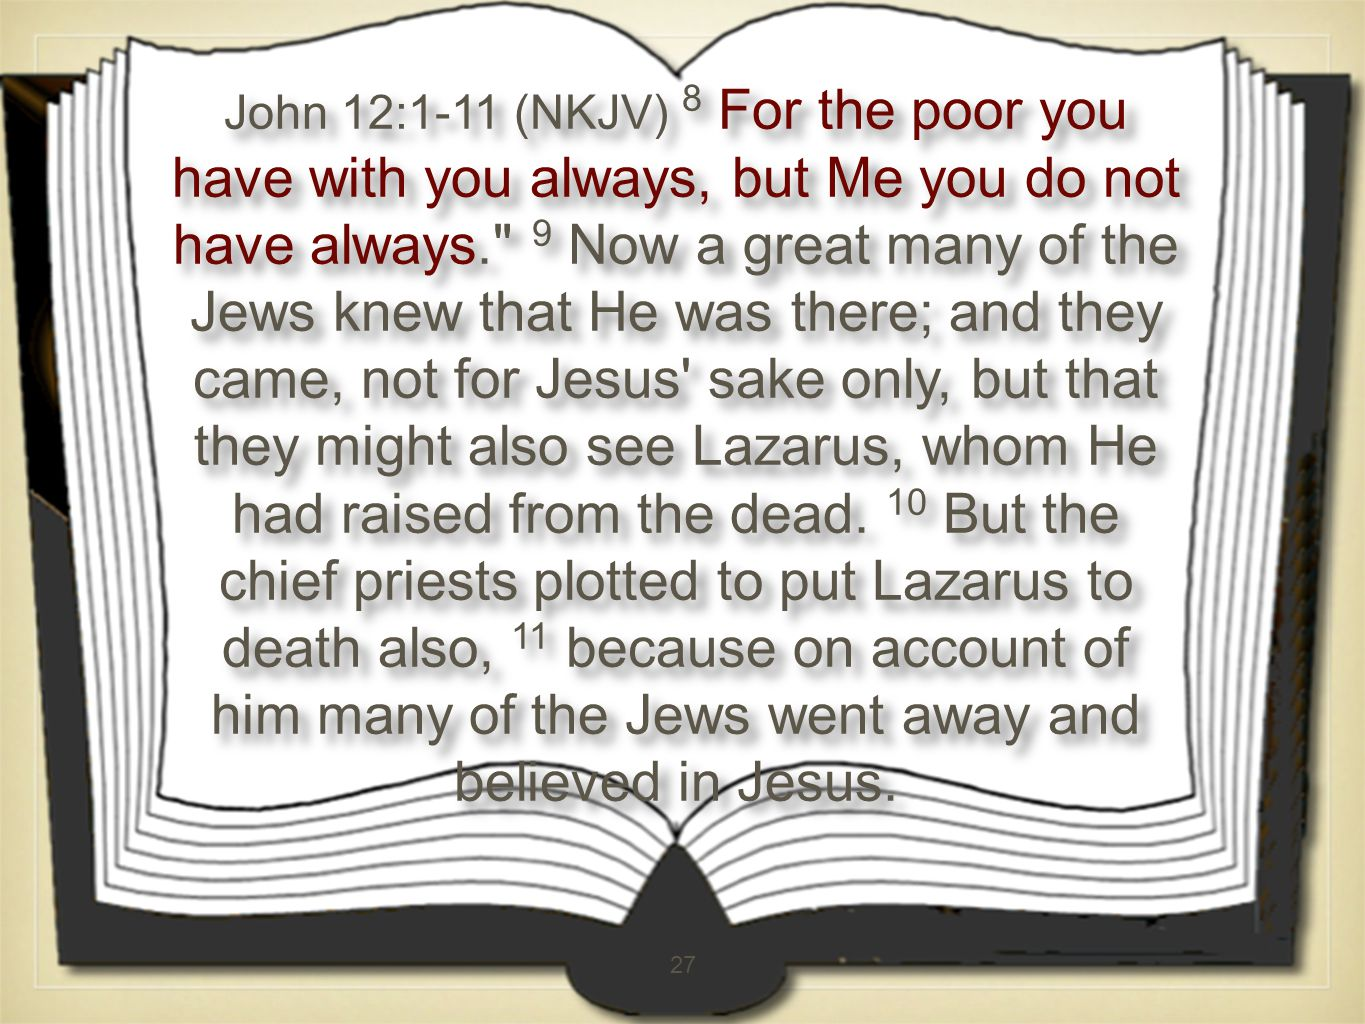 27 John 12:1-11 (NKJV) 8 For the poor you have with you always, but Me you do not have always. 9 Now a great many of the Jews knew that He was there; and they came, not for Jesus sake only, but that they might also see Lazarus, whom He had raised from the dead.